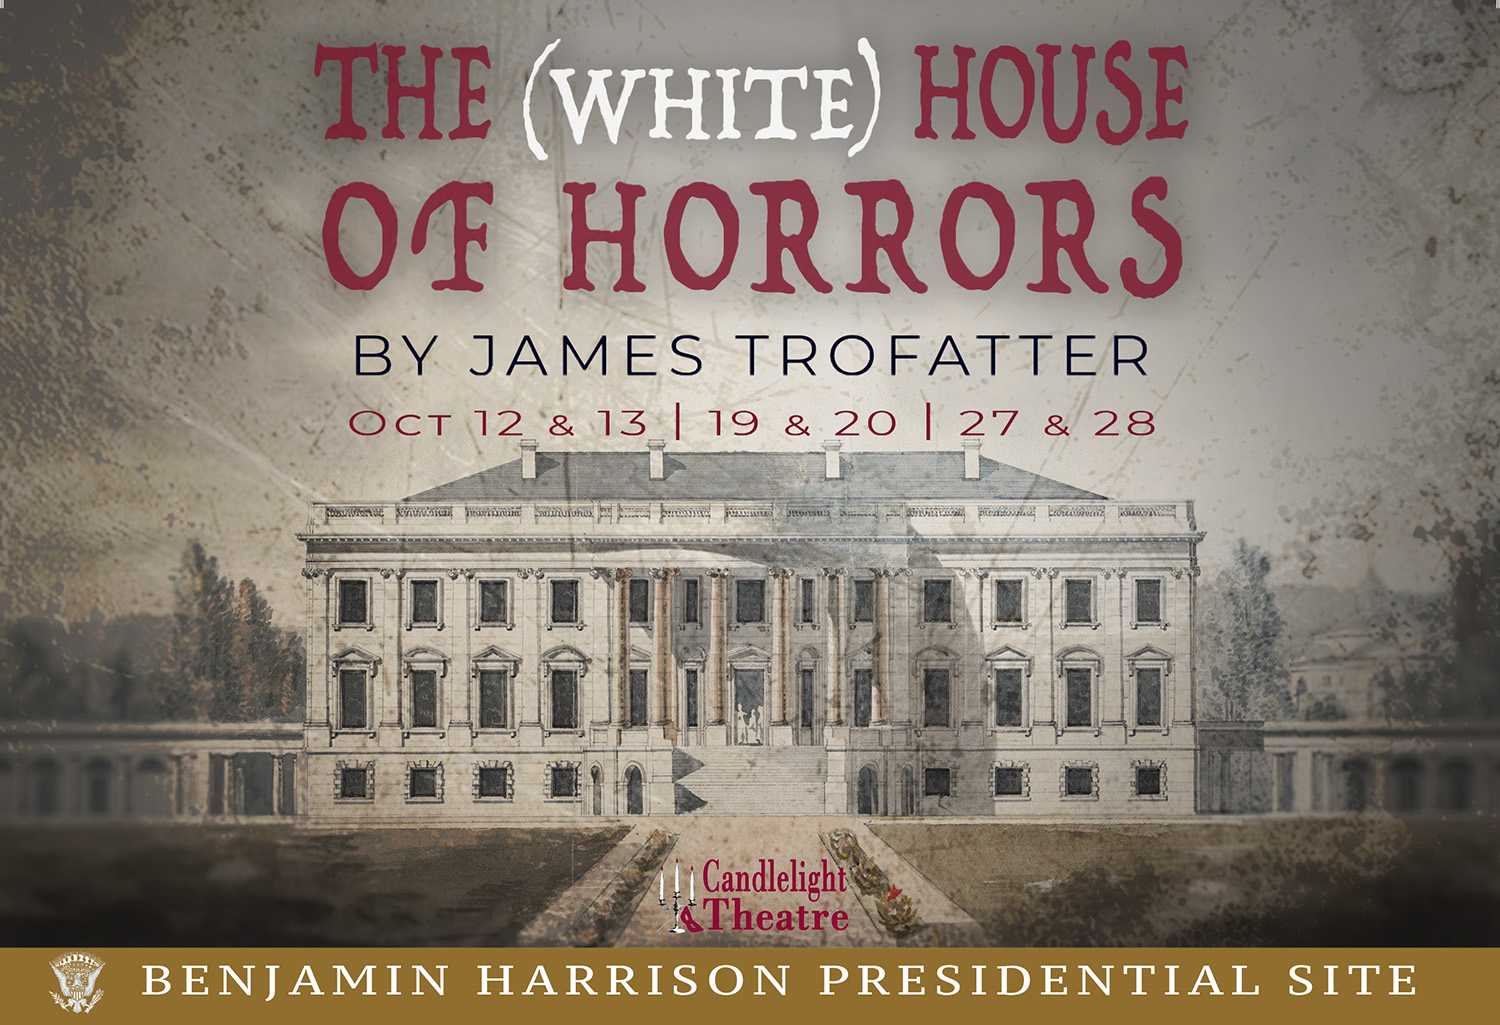 Graphic image of the white house circa 1890. Text reads: The White House of Horrors by James Trofatter, October 12, 13, 19, 20, 27, 28